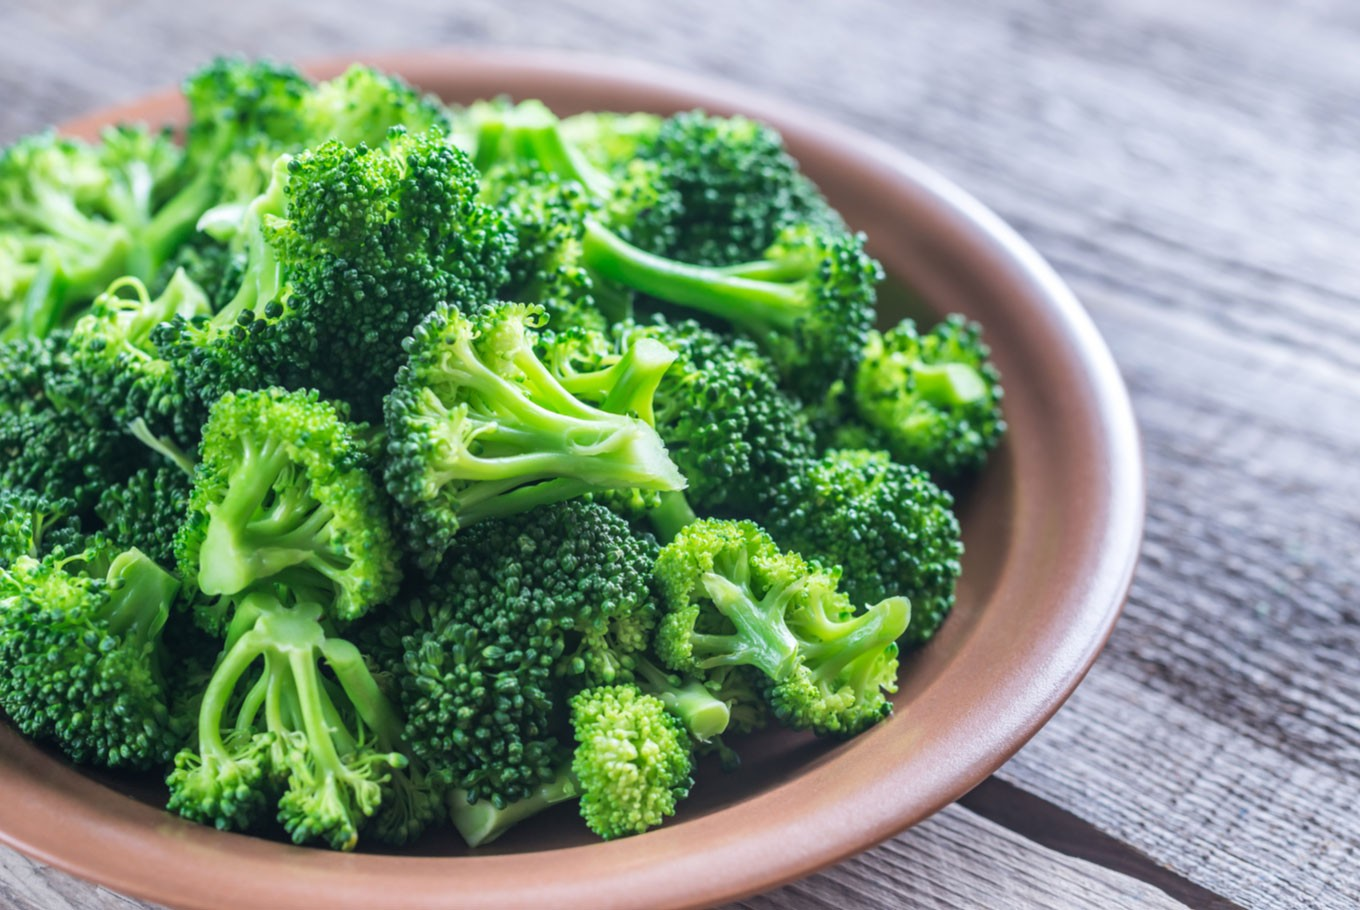 More convincing reasons to eat your broccoli